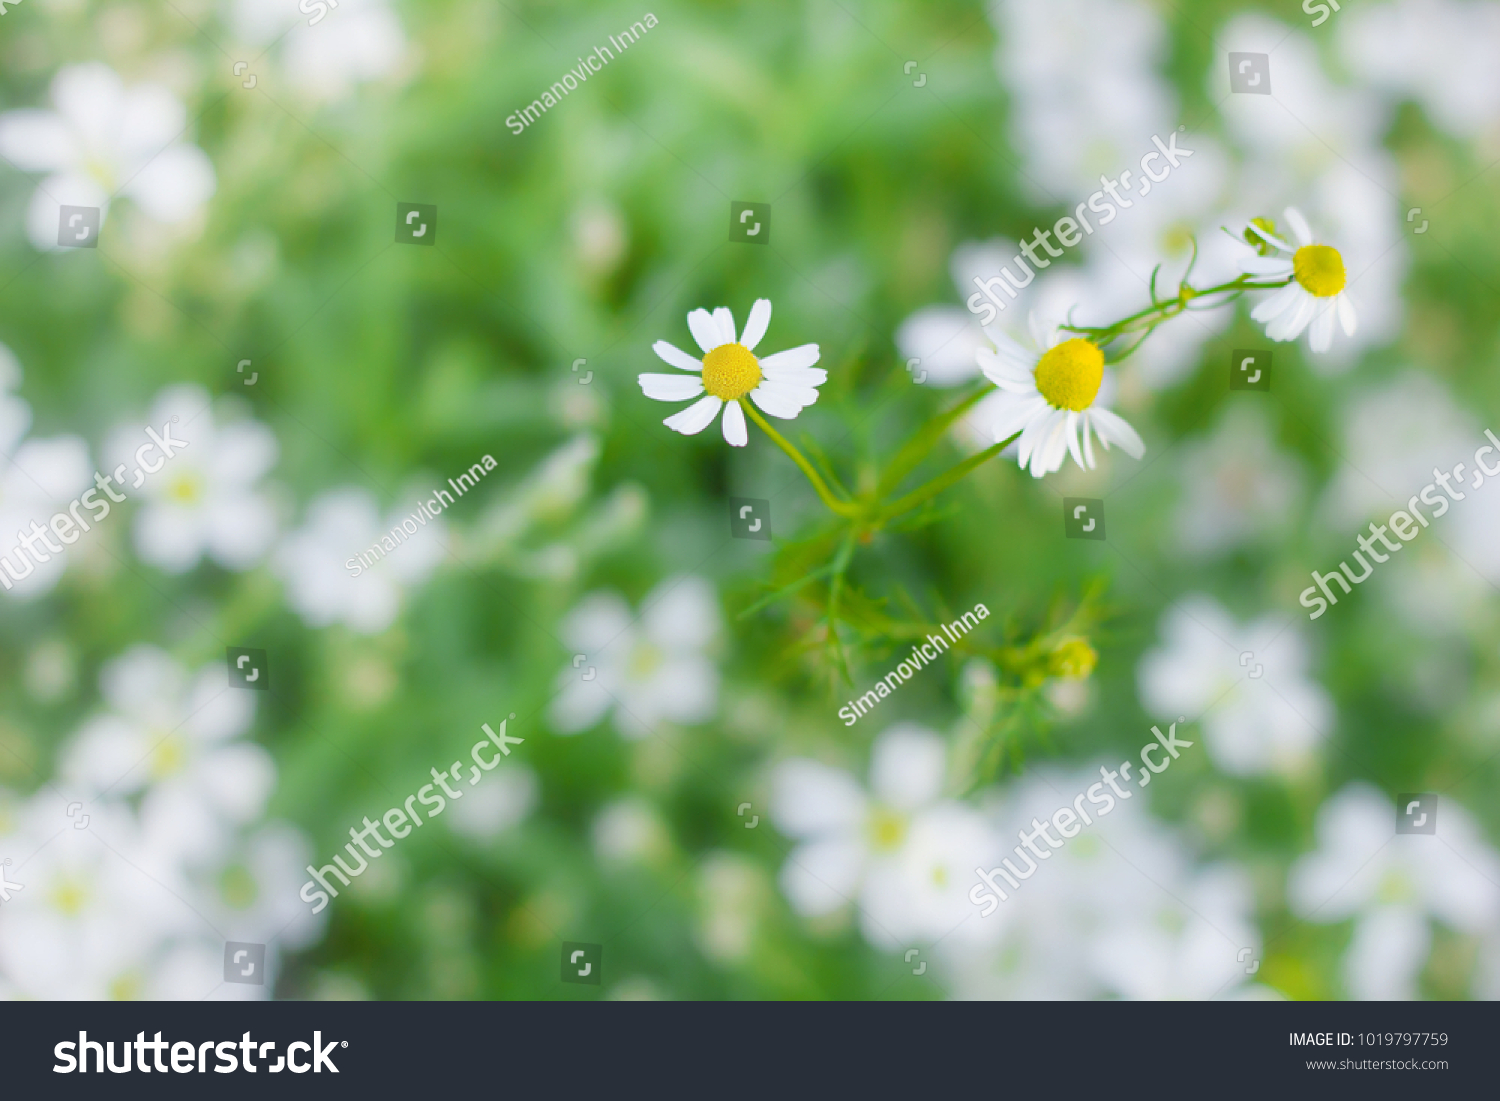 Chamomile Wild Daisies Spring Flowers Field Background Nature